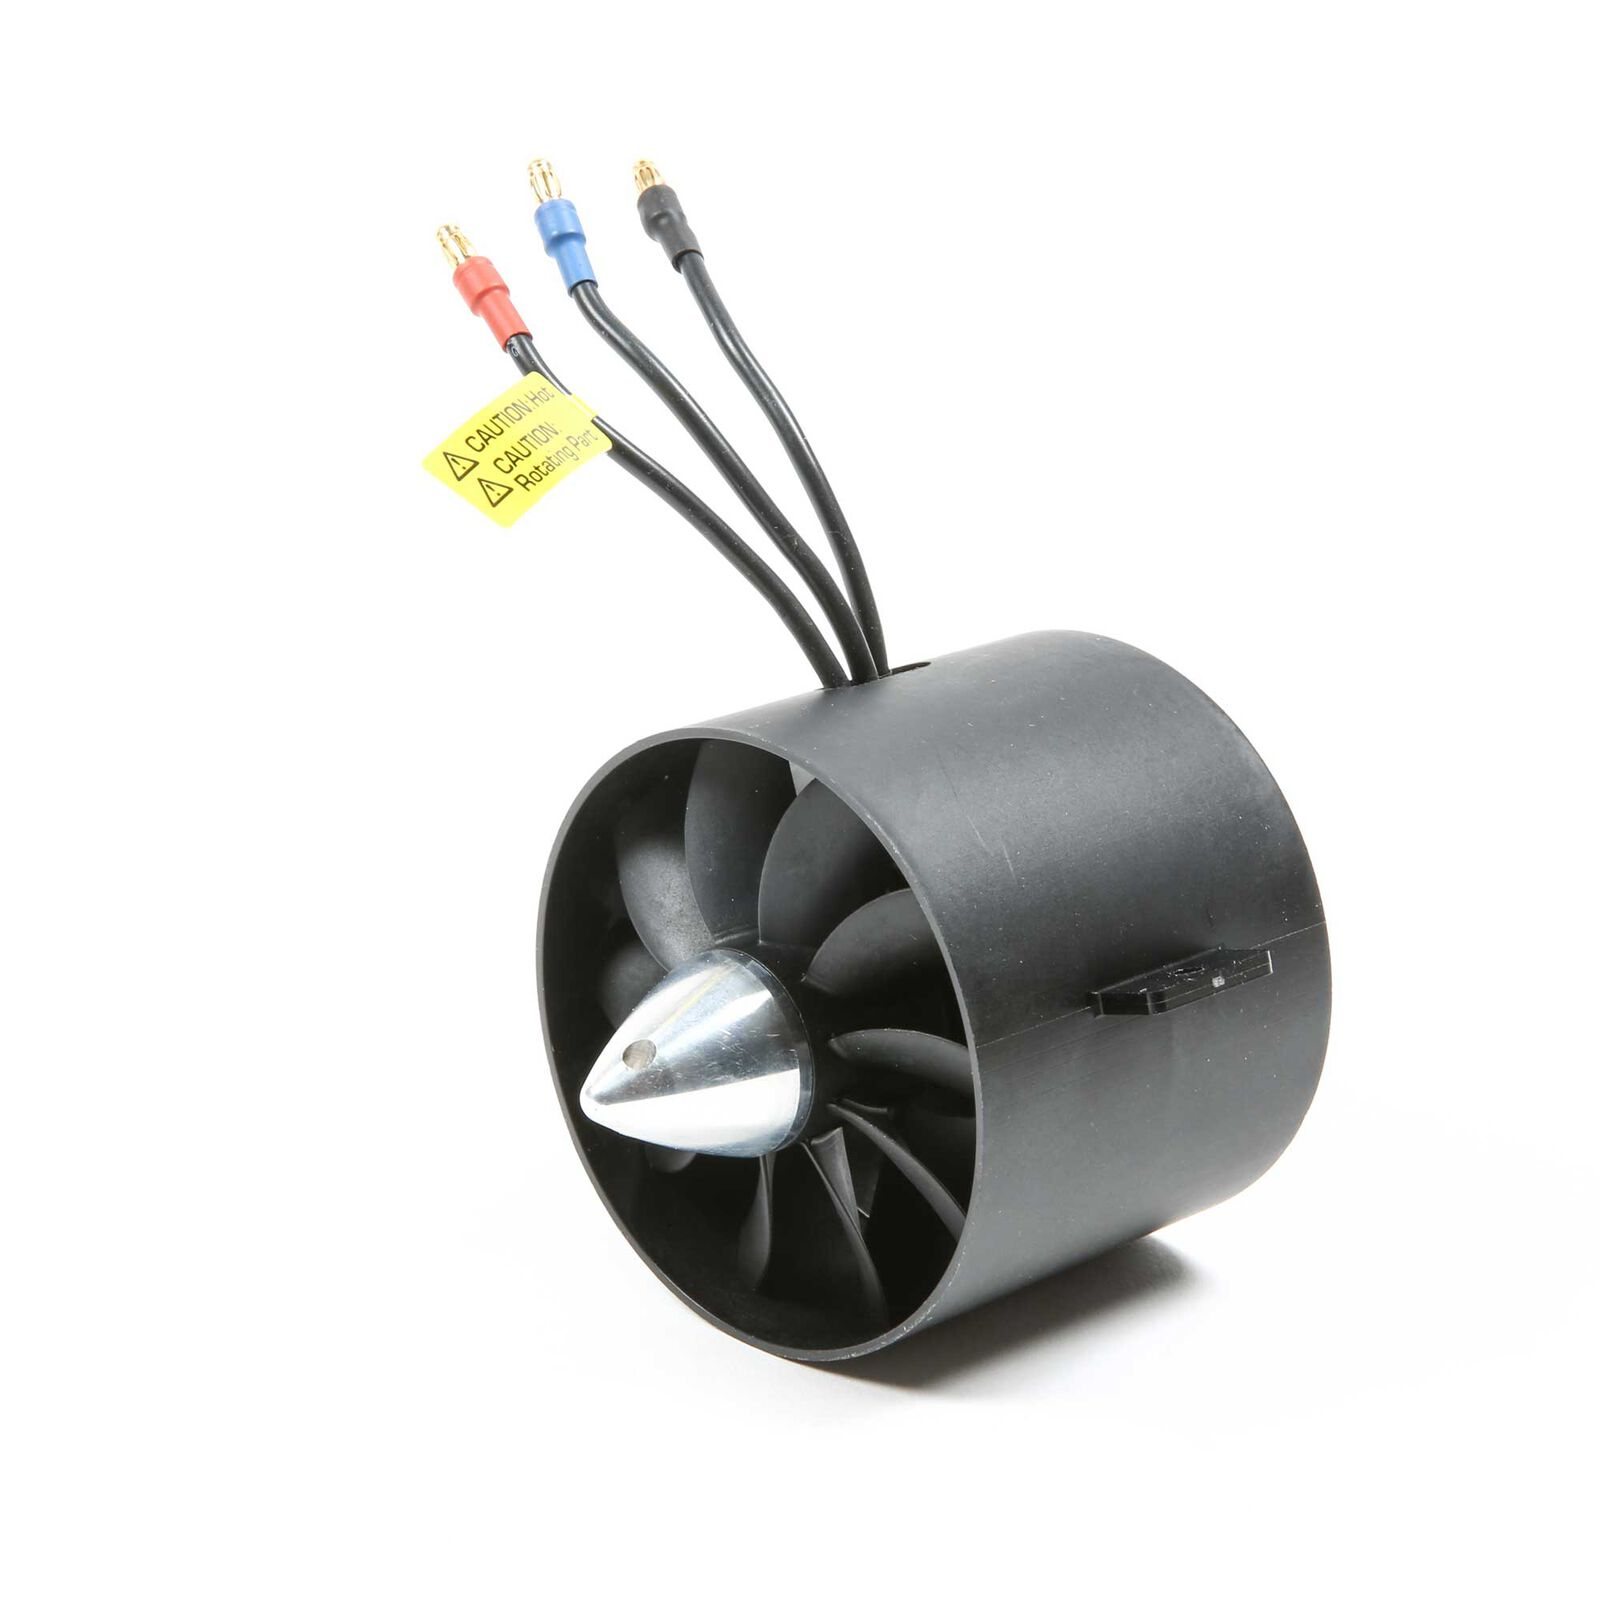 70mm Ducted Fan Unit with Motor: Habu STS